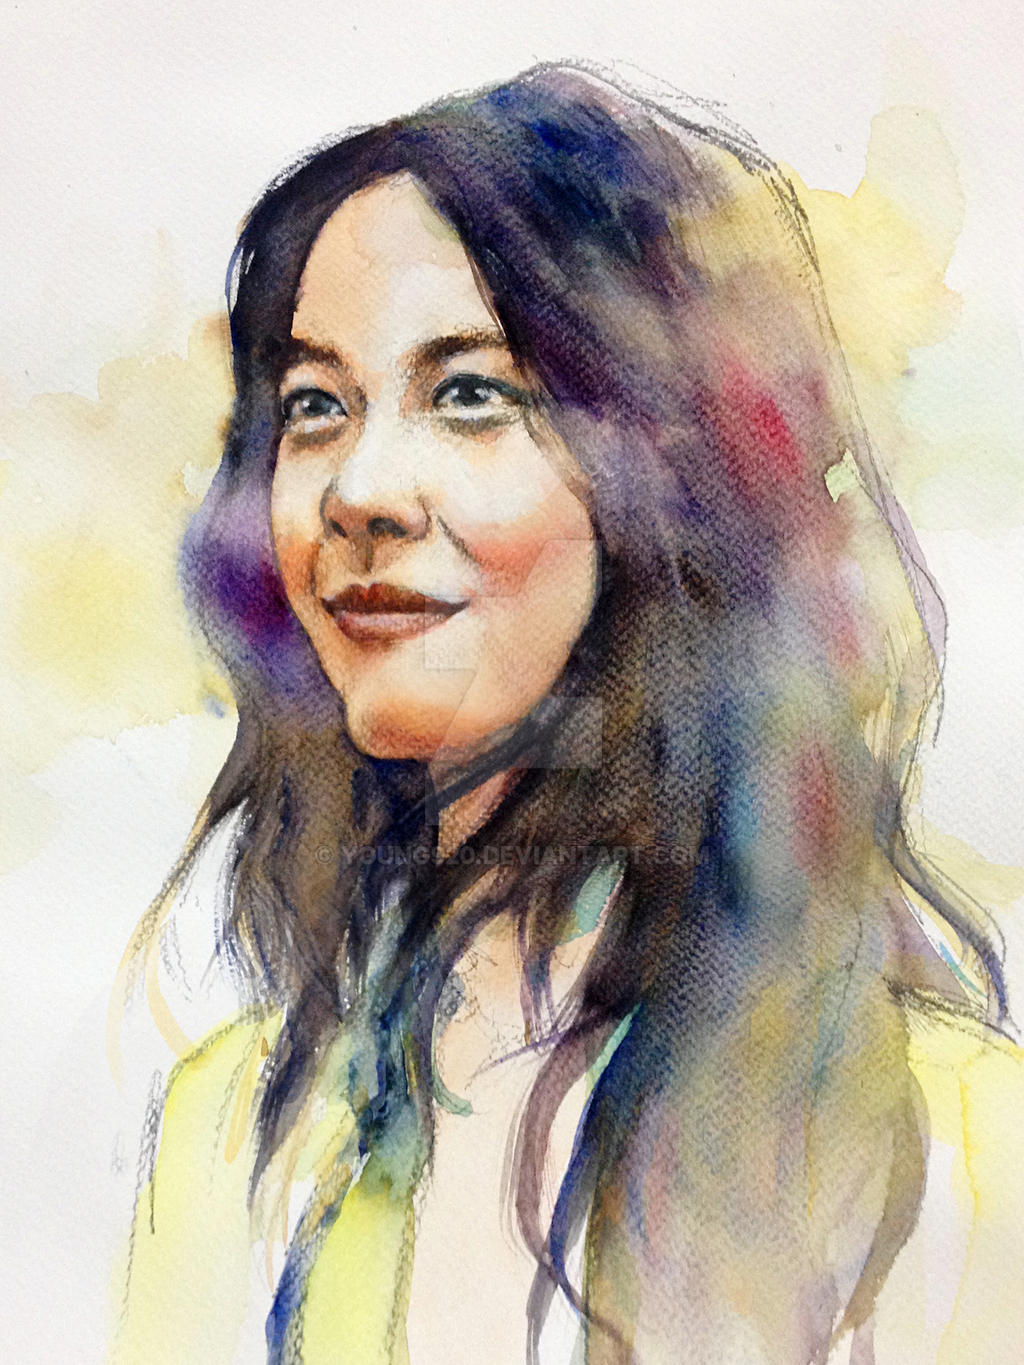 Watercolor portrait of tang wei by young920